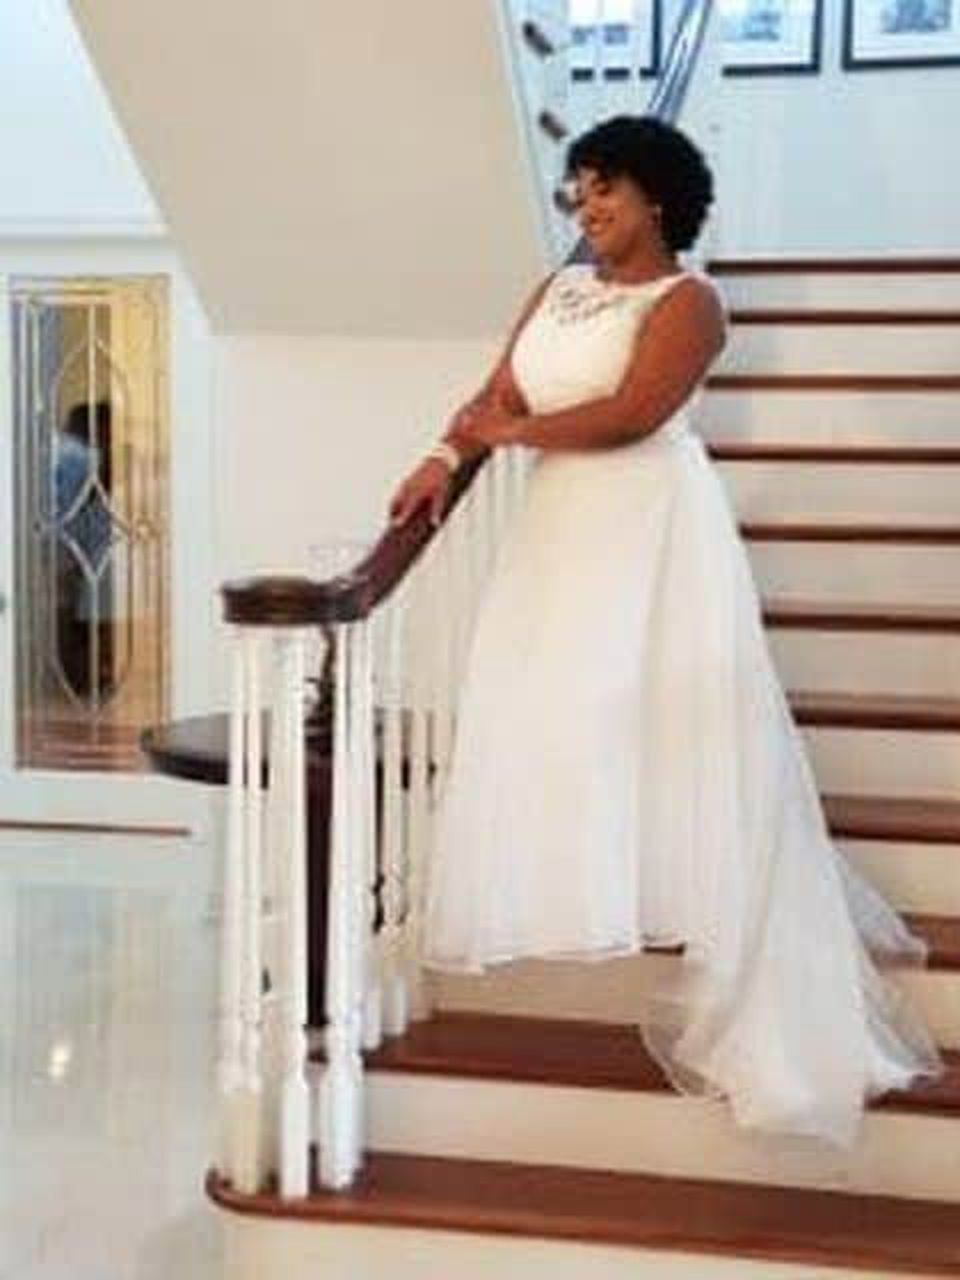 Dulce Gonzalez posed in her wedding dress on the Strunks' staircase.